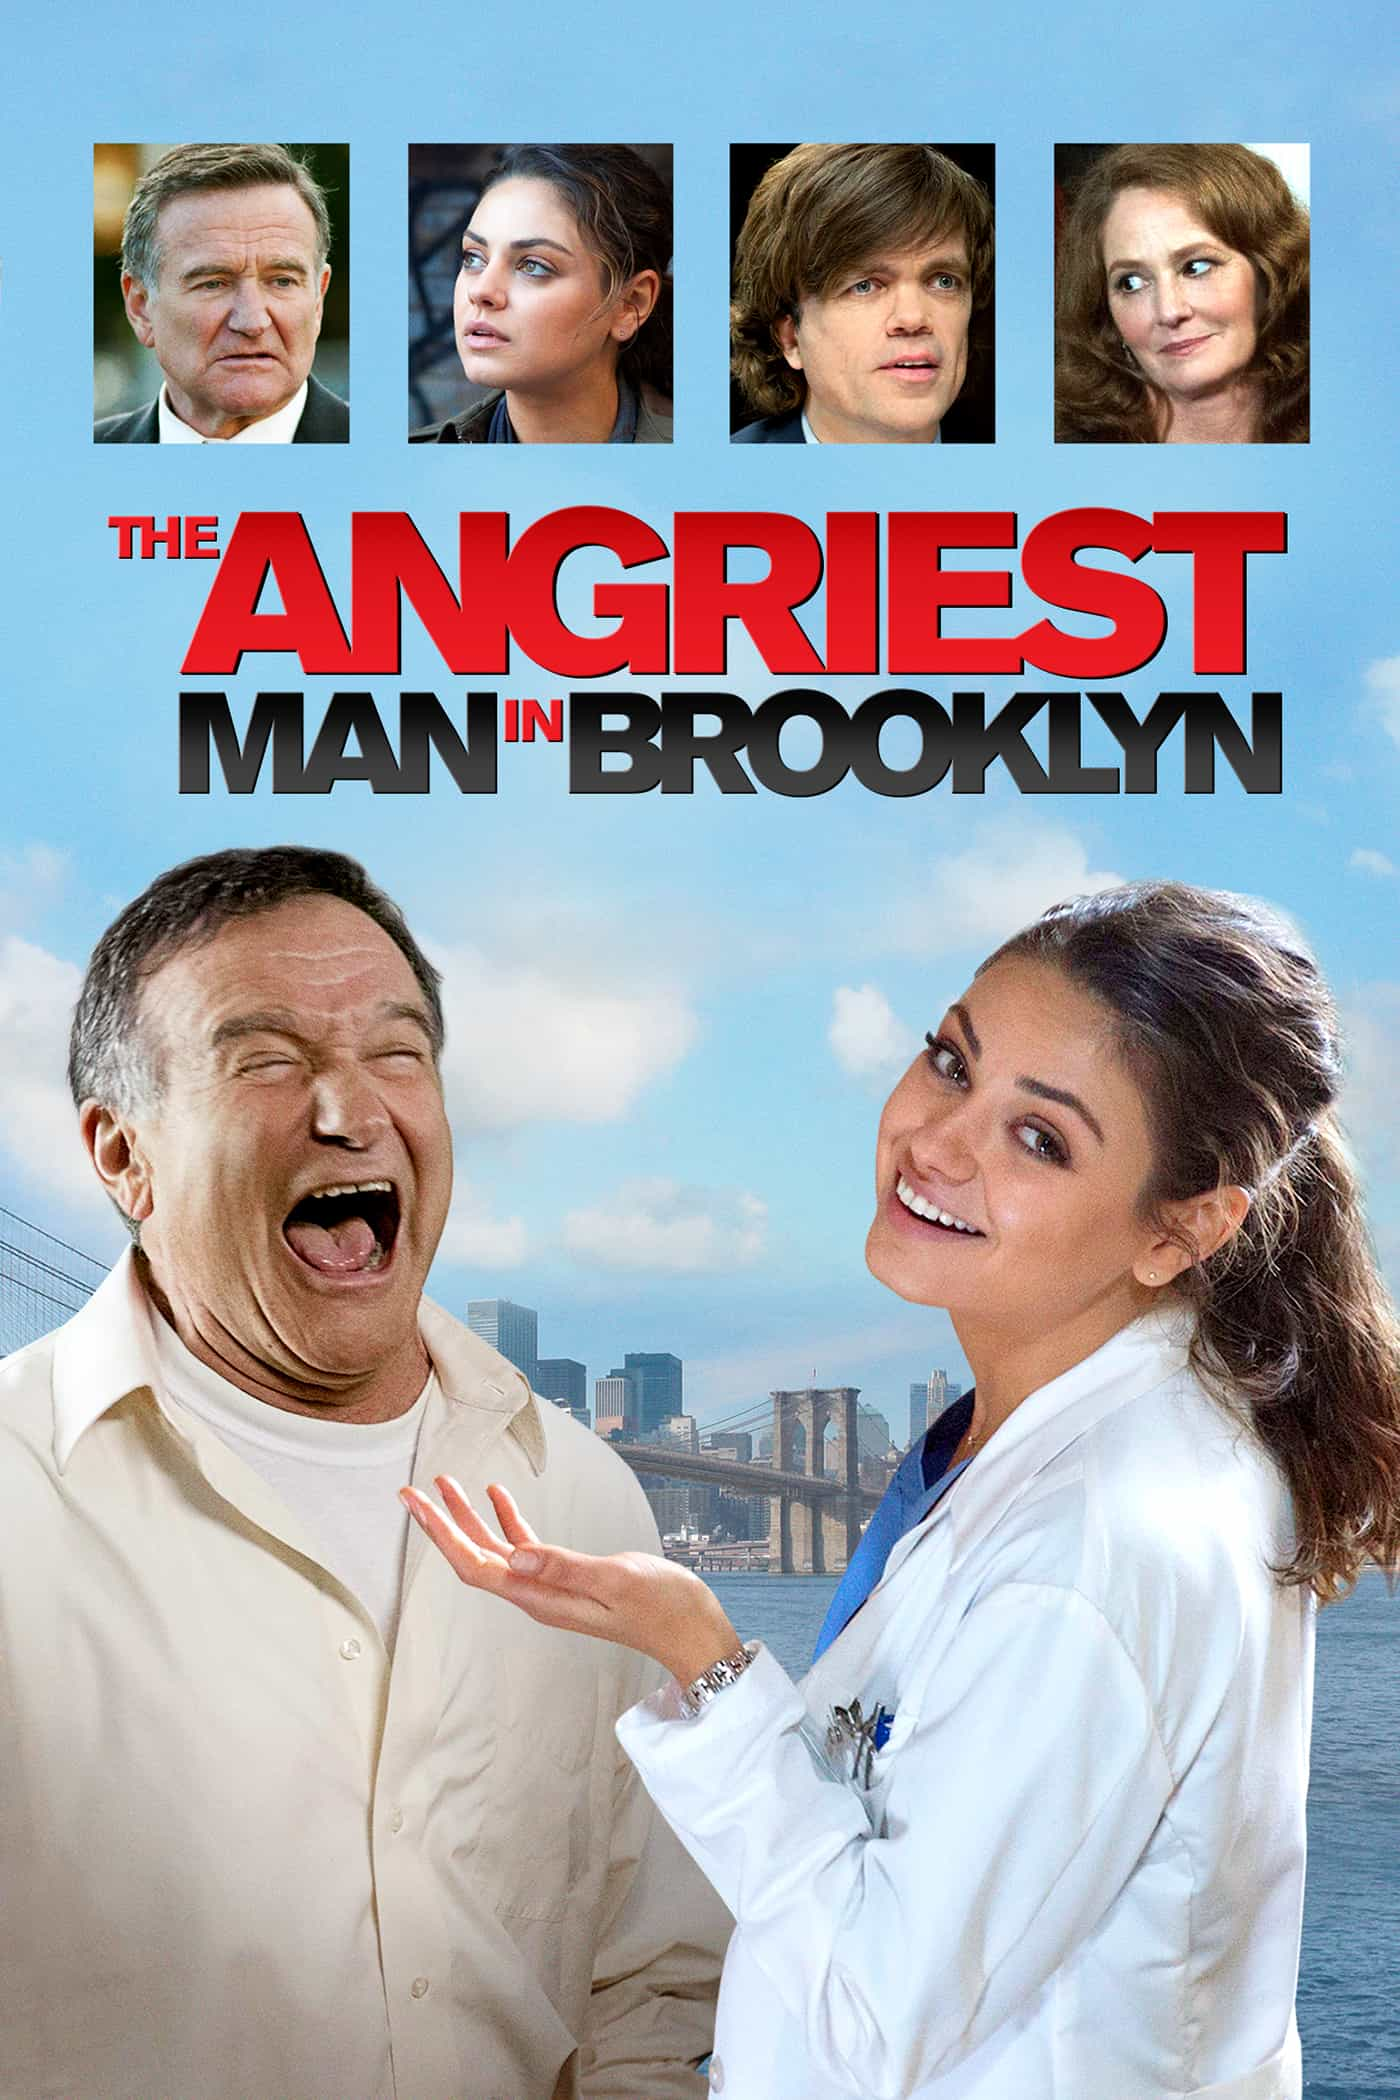 The Angriest Man in Brooklyn, 2014